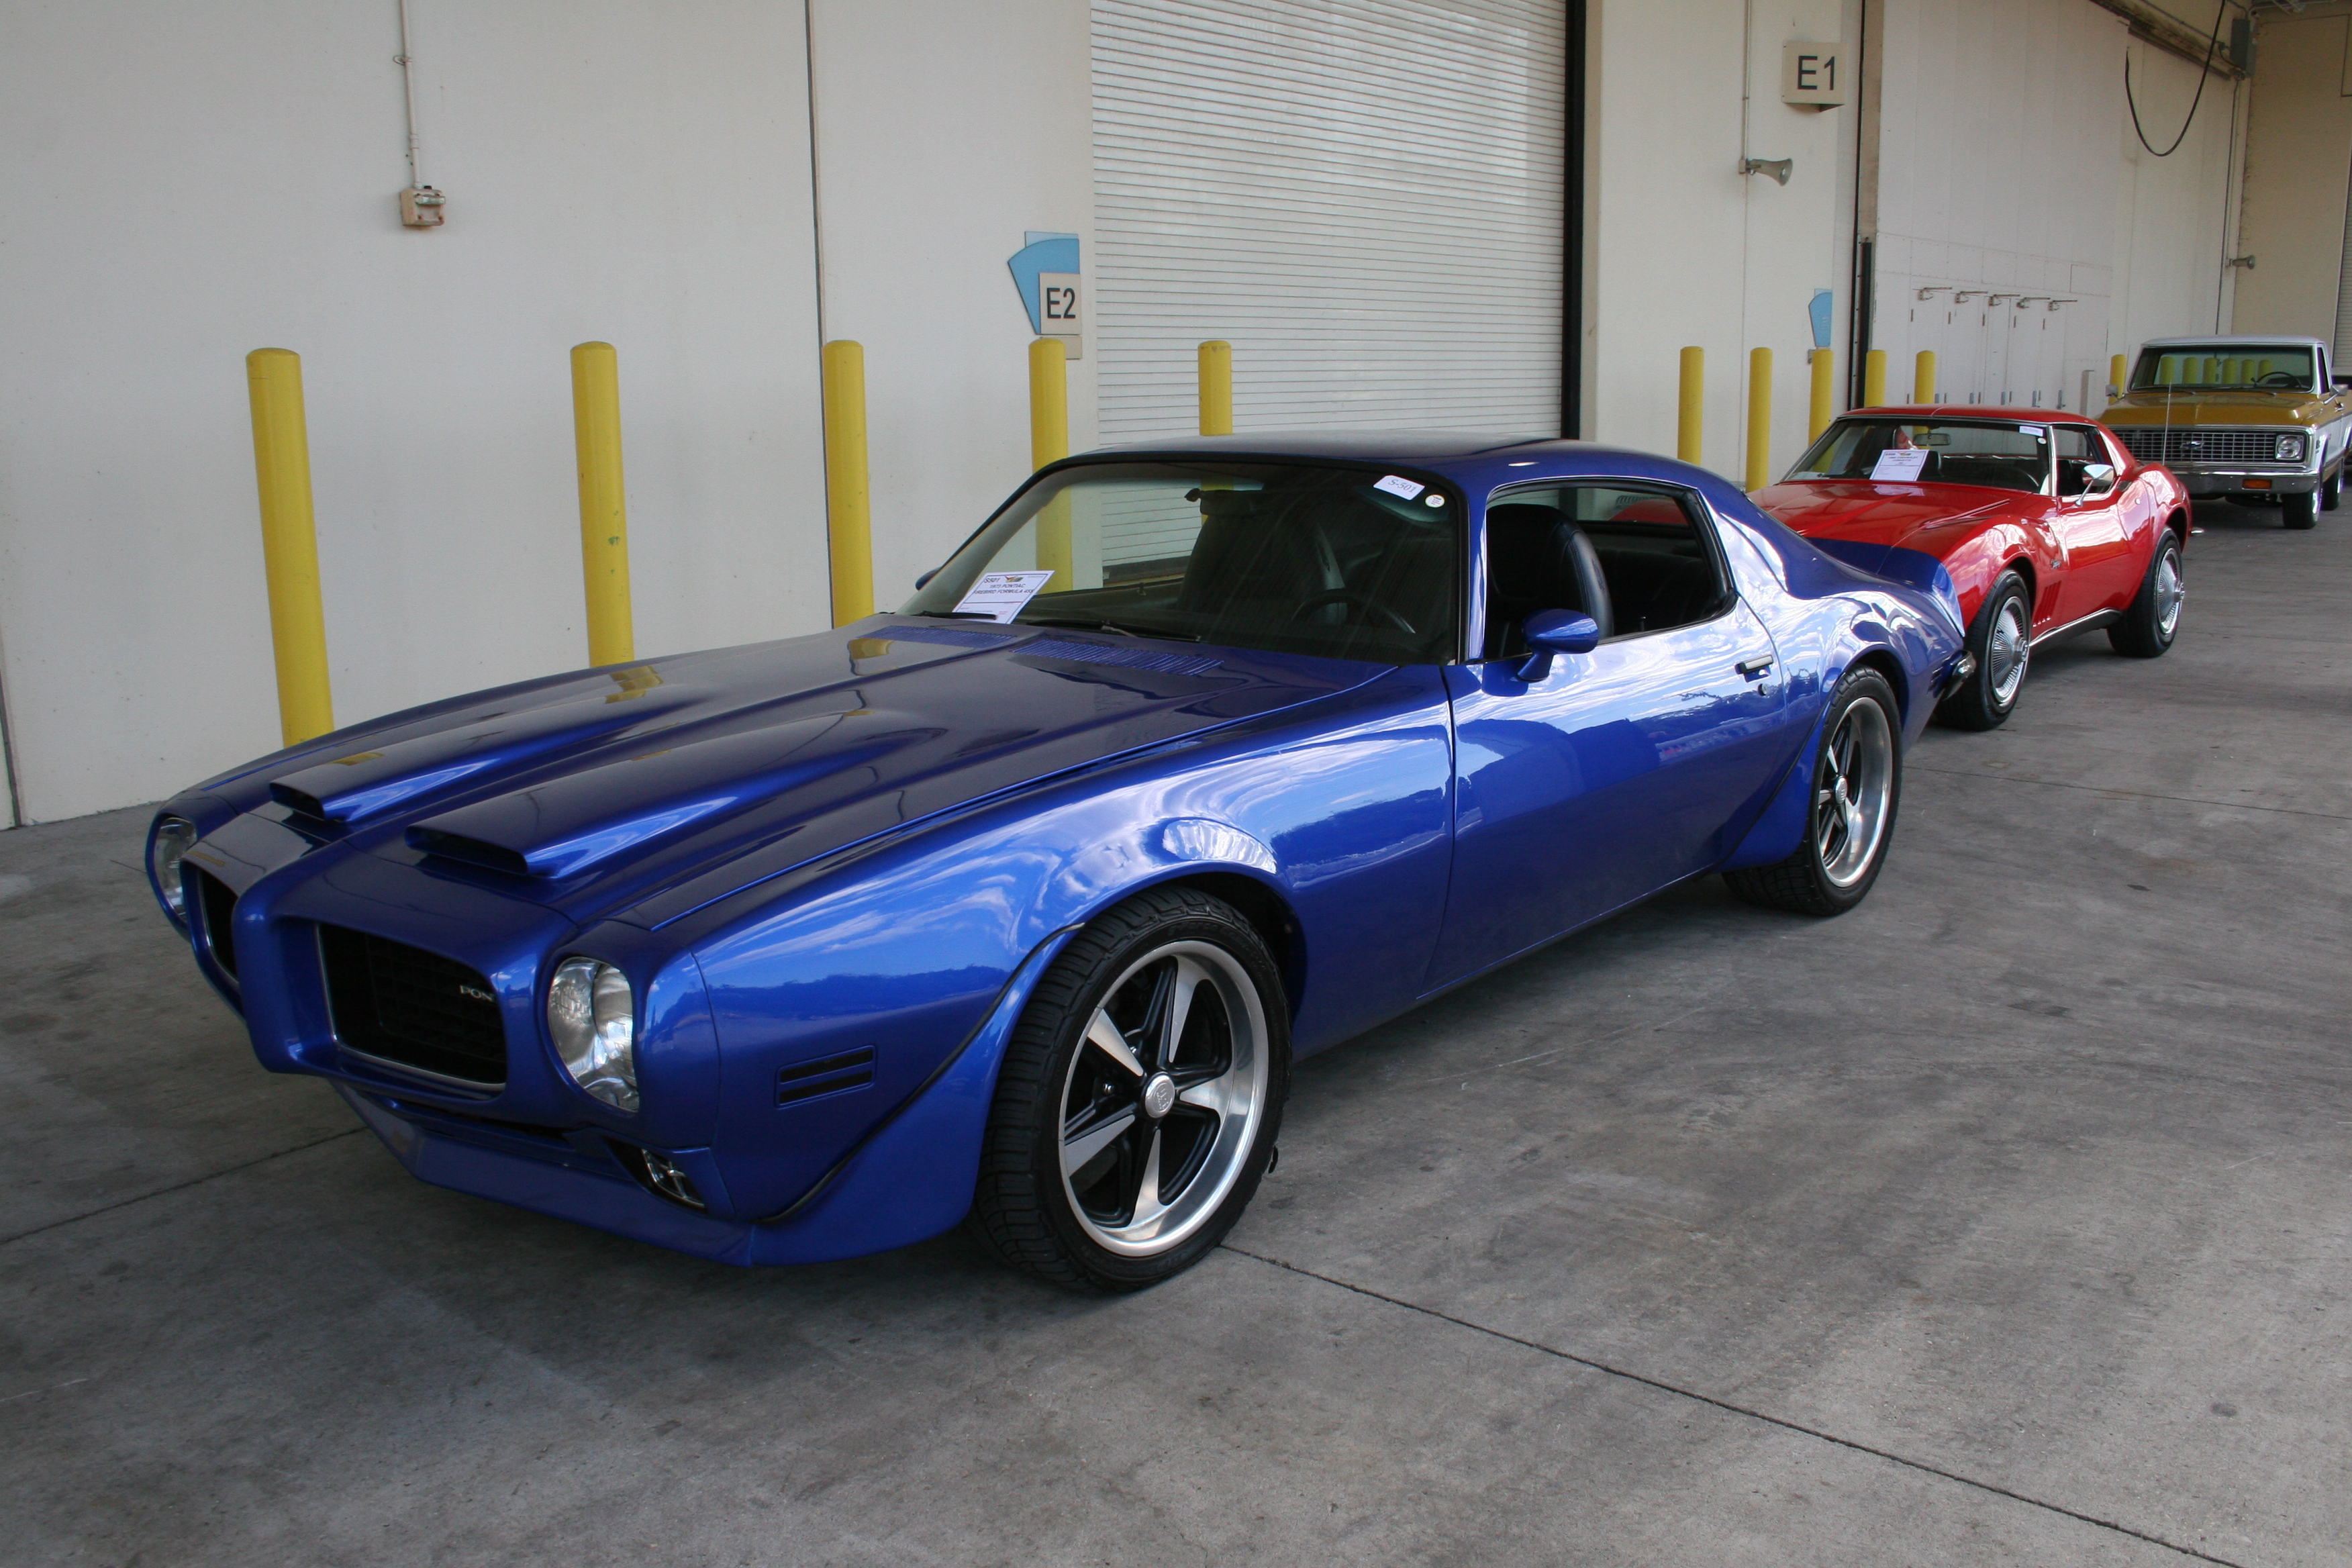 1973 Pontiac Firebird Formula 455 For Sale At Vicari Auctions Biloxi Trans Am 2nd Image Of A